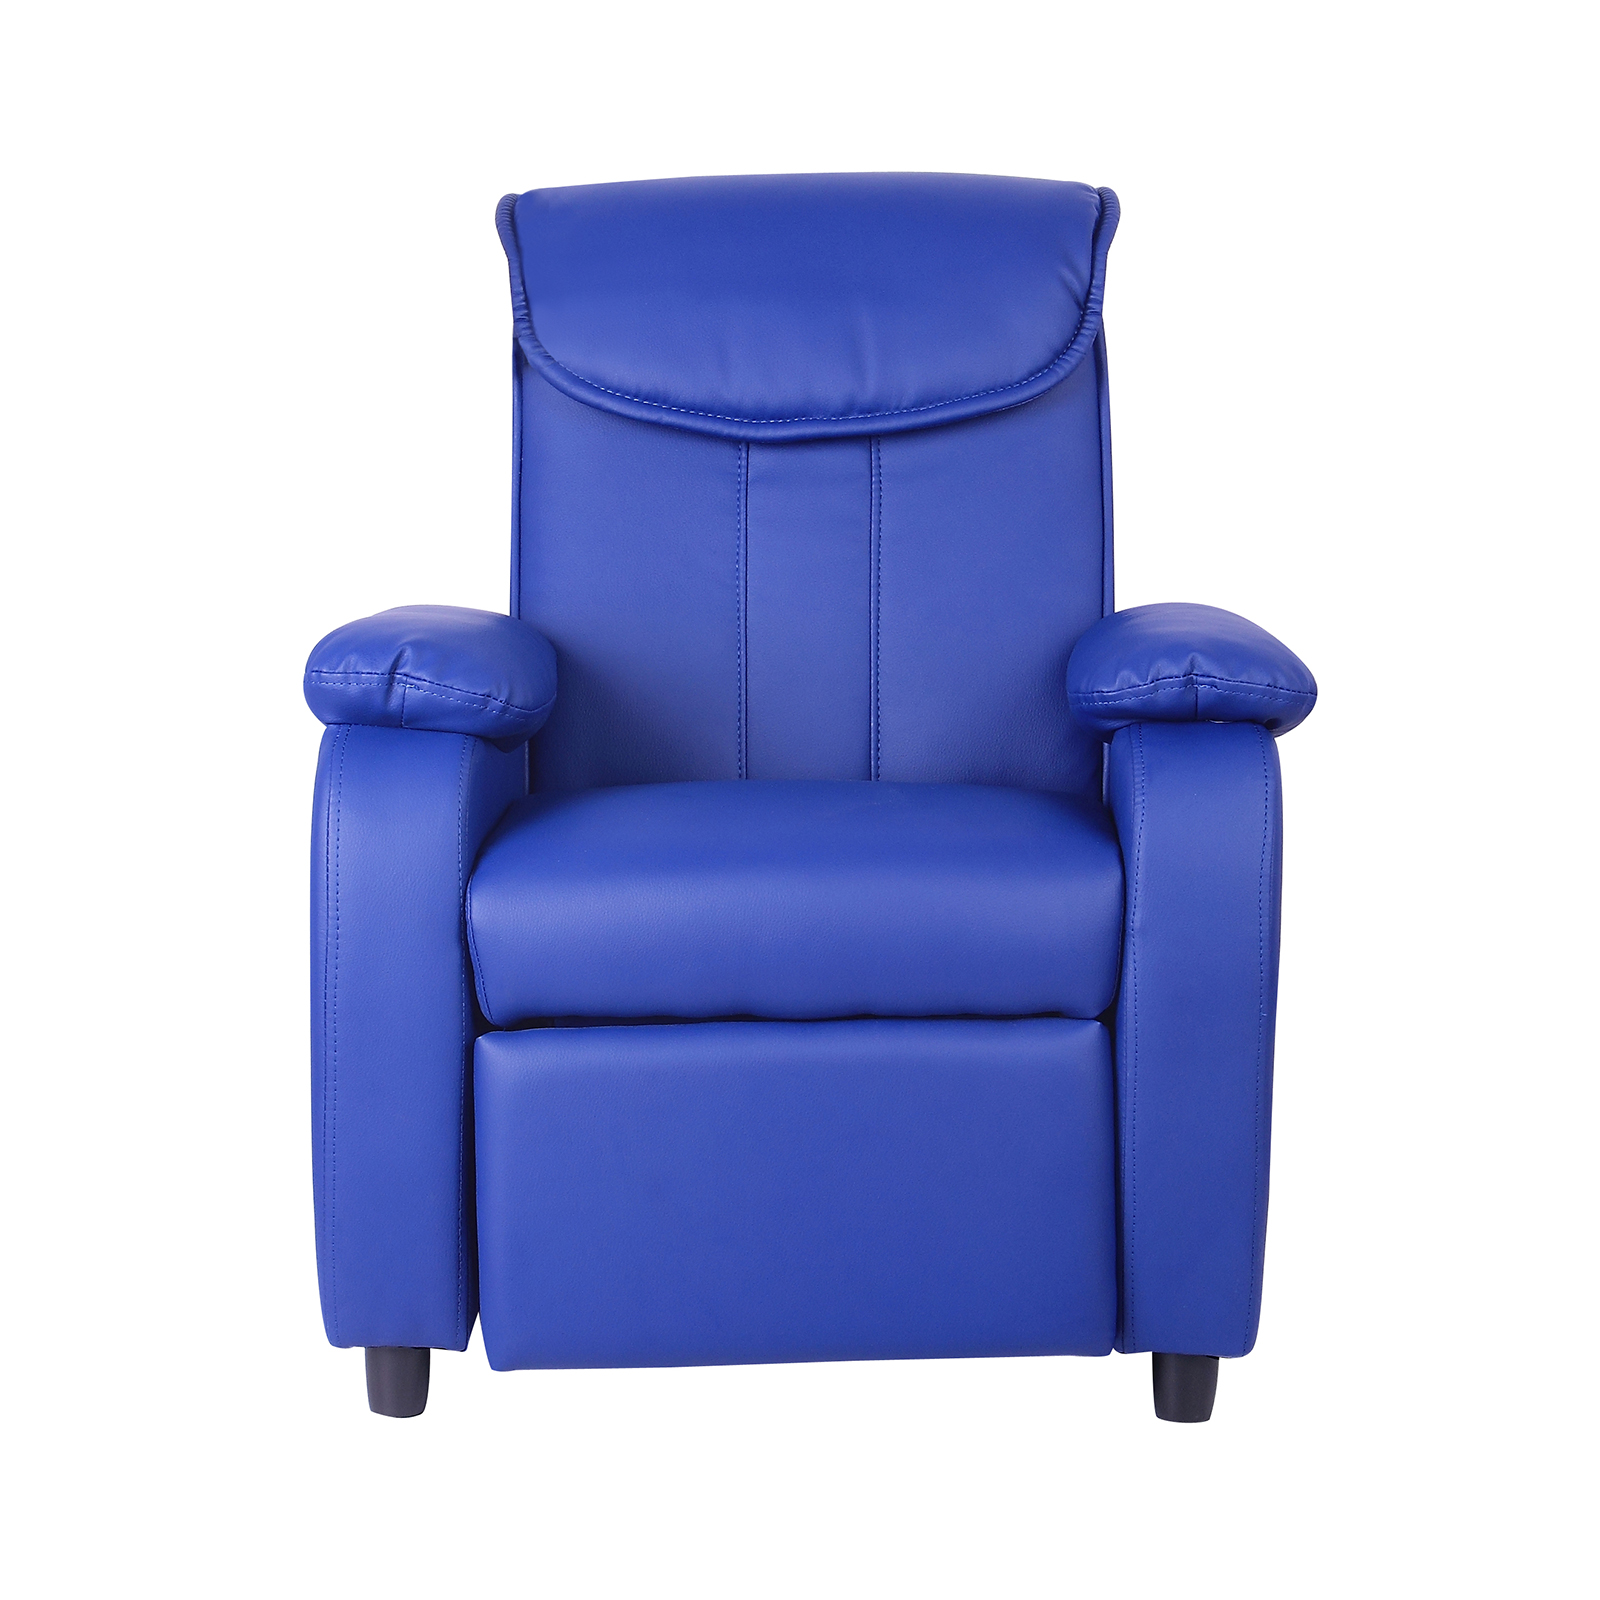 Childrens Luxury Recliner Chair Comfy Faux Leather